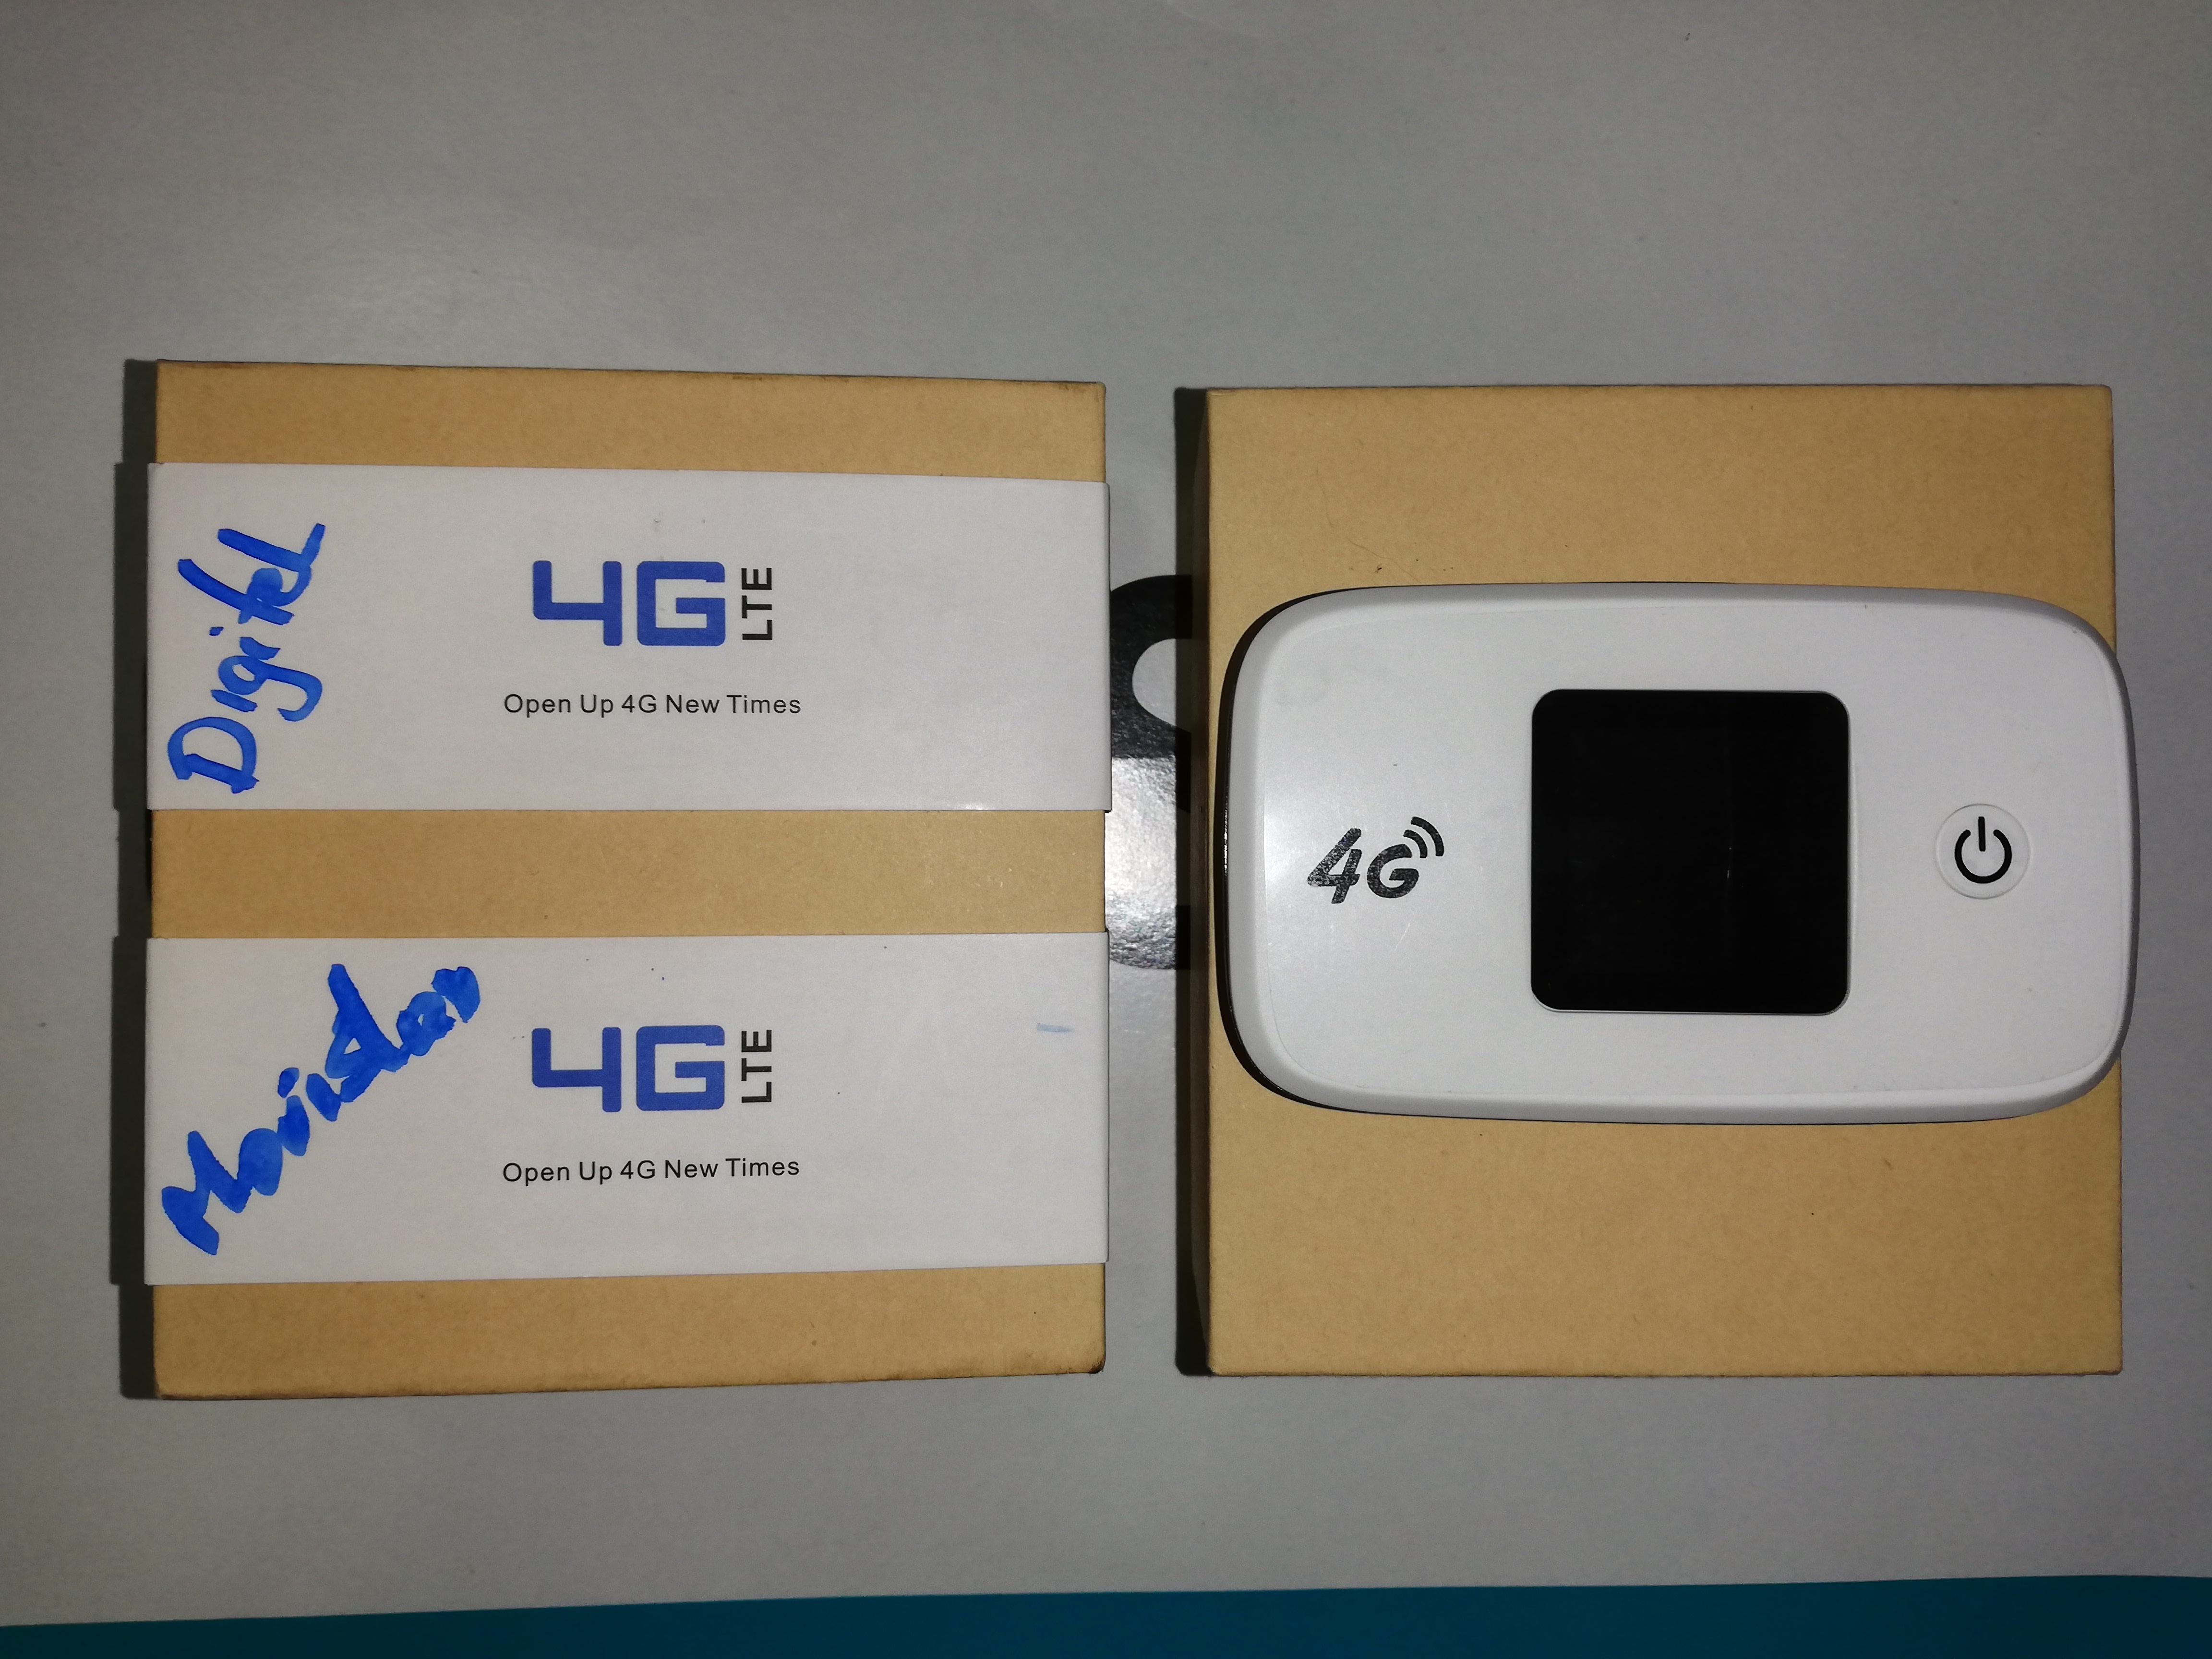 Bam Digitel 4G - Disponible 8